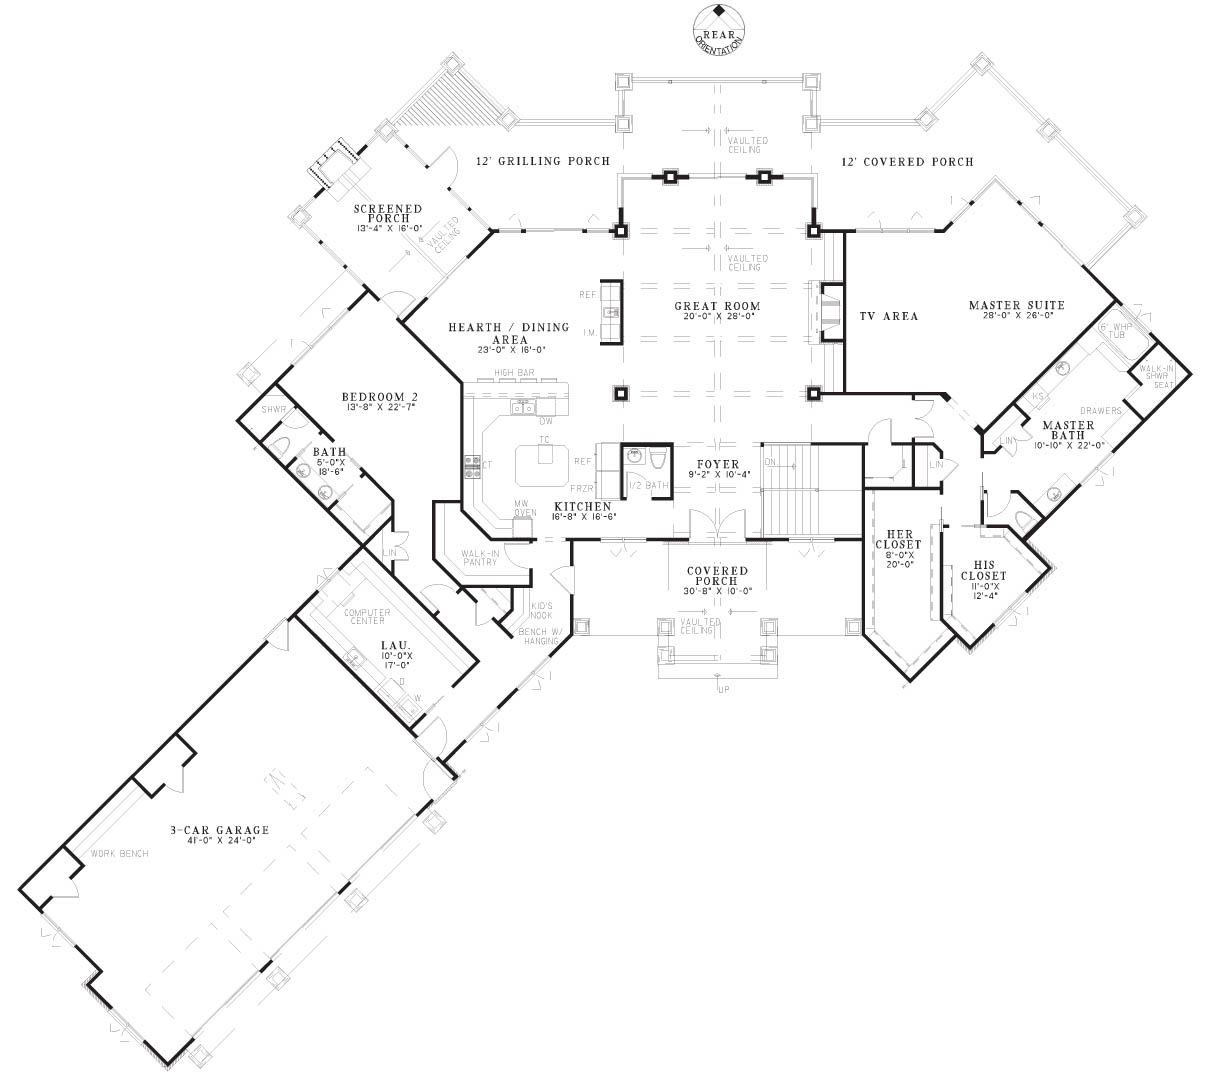 Luxury master bedroom floor plans  First Floor image of The Summit House Plan  house plans  Pinterest